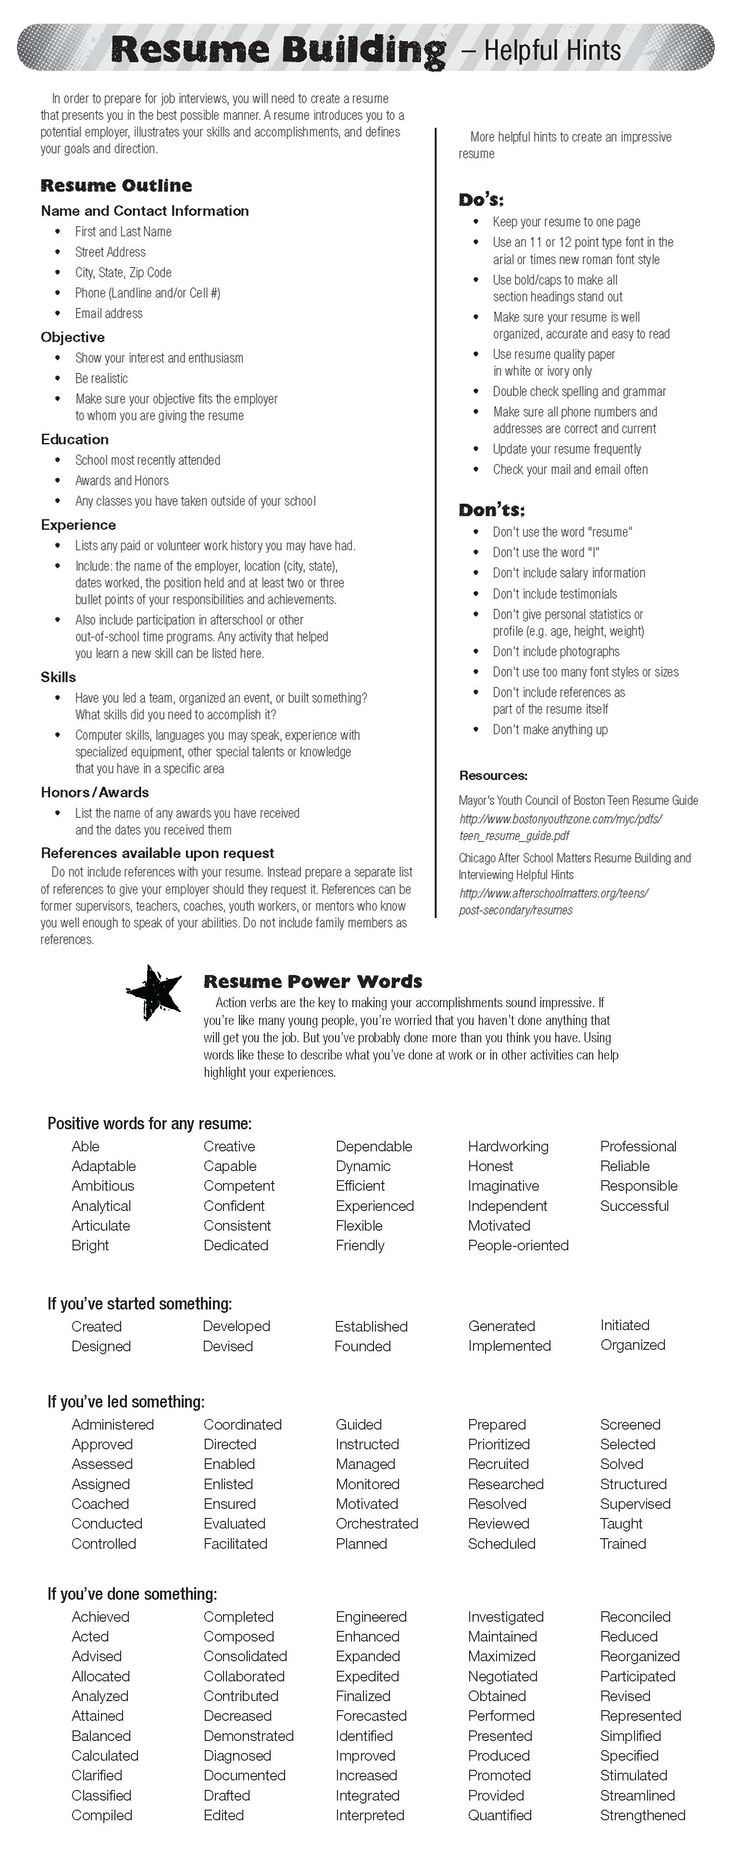 Picnictoimpeachus  Surprising  Ideas About Resume On Pinterest  Cv Format Resume Cv And  With Gorgeous  Ideas About Resume On Pinterest  Cv Format Resume Cv And Resume Templates With Astonishing Summary For Resume Customer Service Also Objective For Business Resume In Addition College Admission Resume Examples And Talent Resume Template As Well As Resume Maker For Free Additionally Sample First Resume From Pinterestcom With Picnictoimpeachus  Gorgeous  Ideas About Resume On Pinterest  Cv Format Resume Cv And  With Astonishing  Ideas About Resume On Pinterest  Cv Format Resume Cv And Resume Templates And Surprising Summary For Resume Customer Service Also Objective For Business Resume In Addition College Admission Resume Examples From Pinterestcom